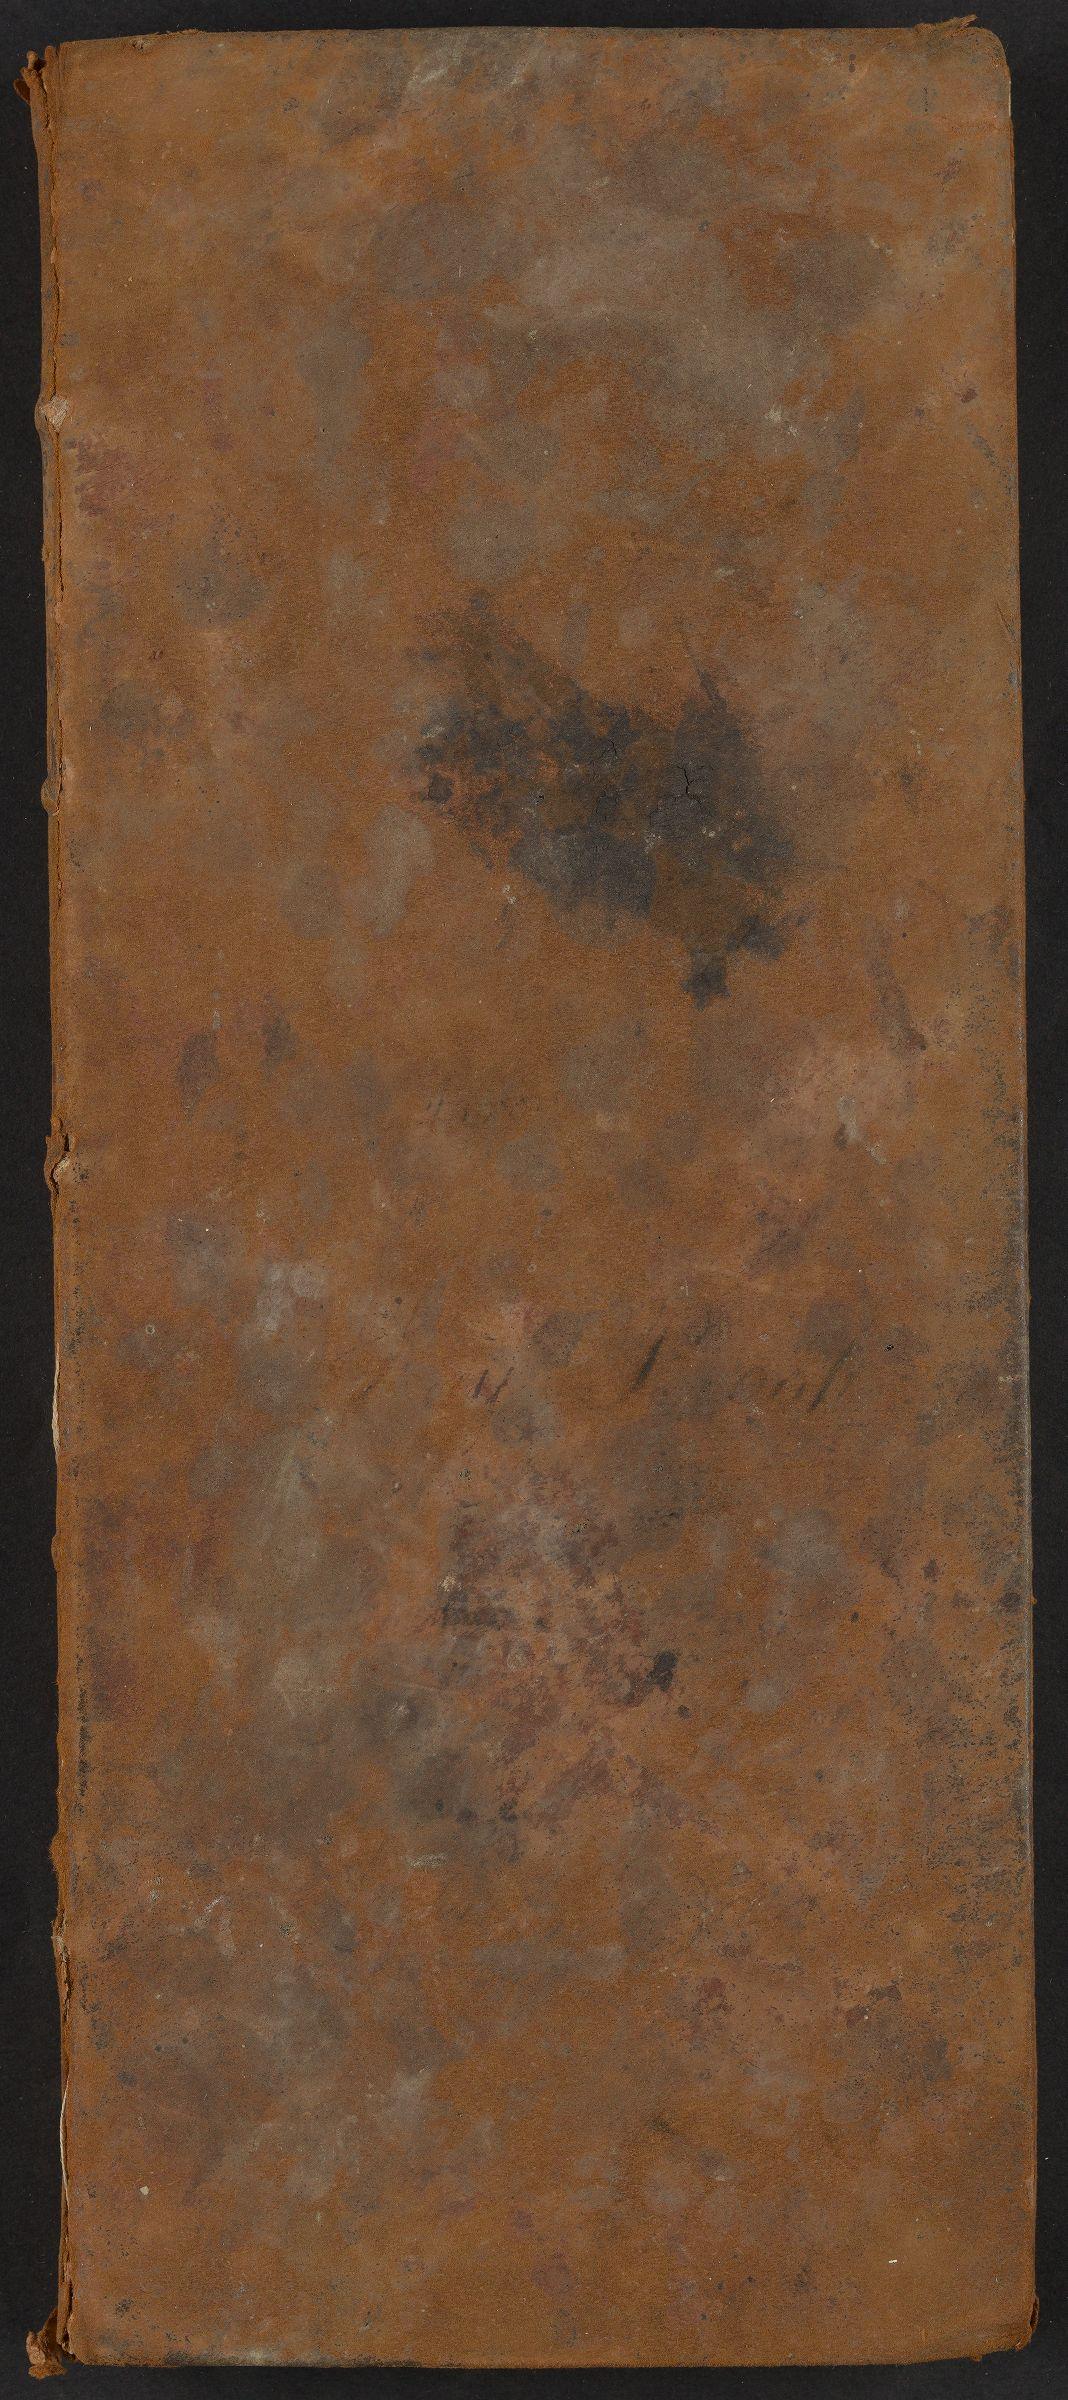 Account books of Sylvester Woodbridge, 1792-1826 (inclusive)